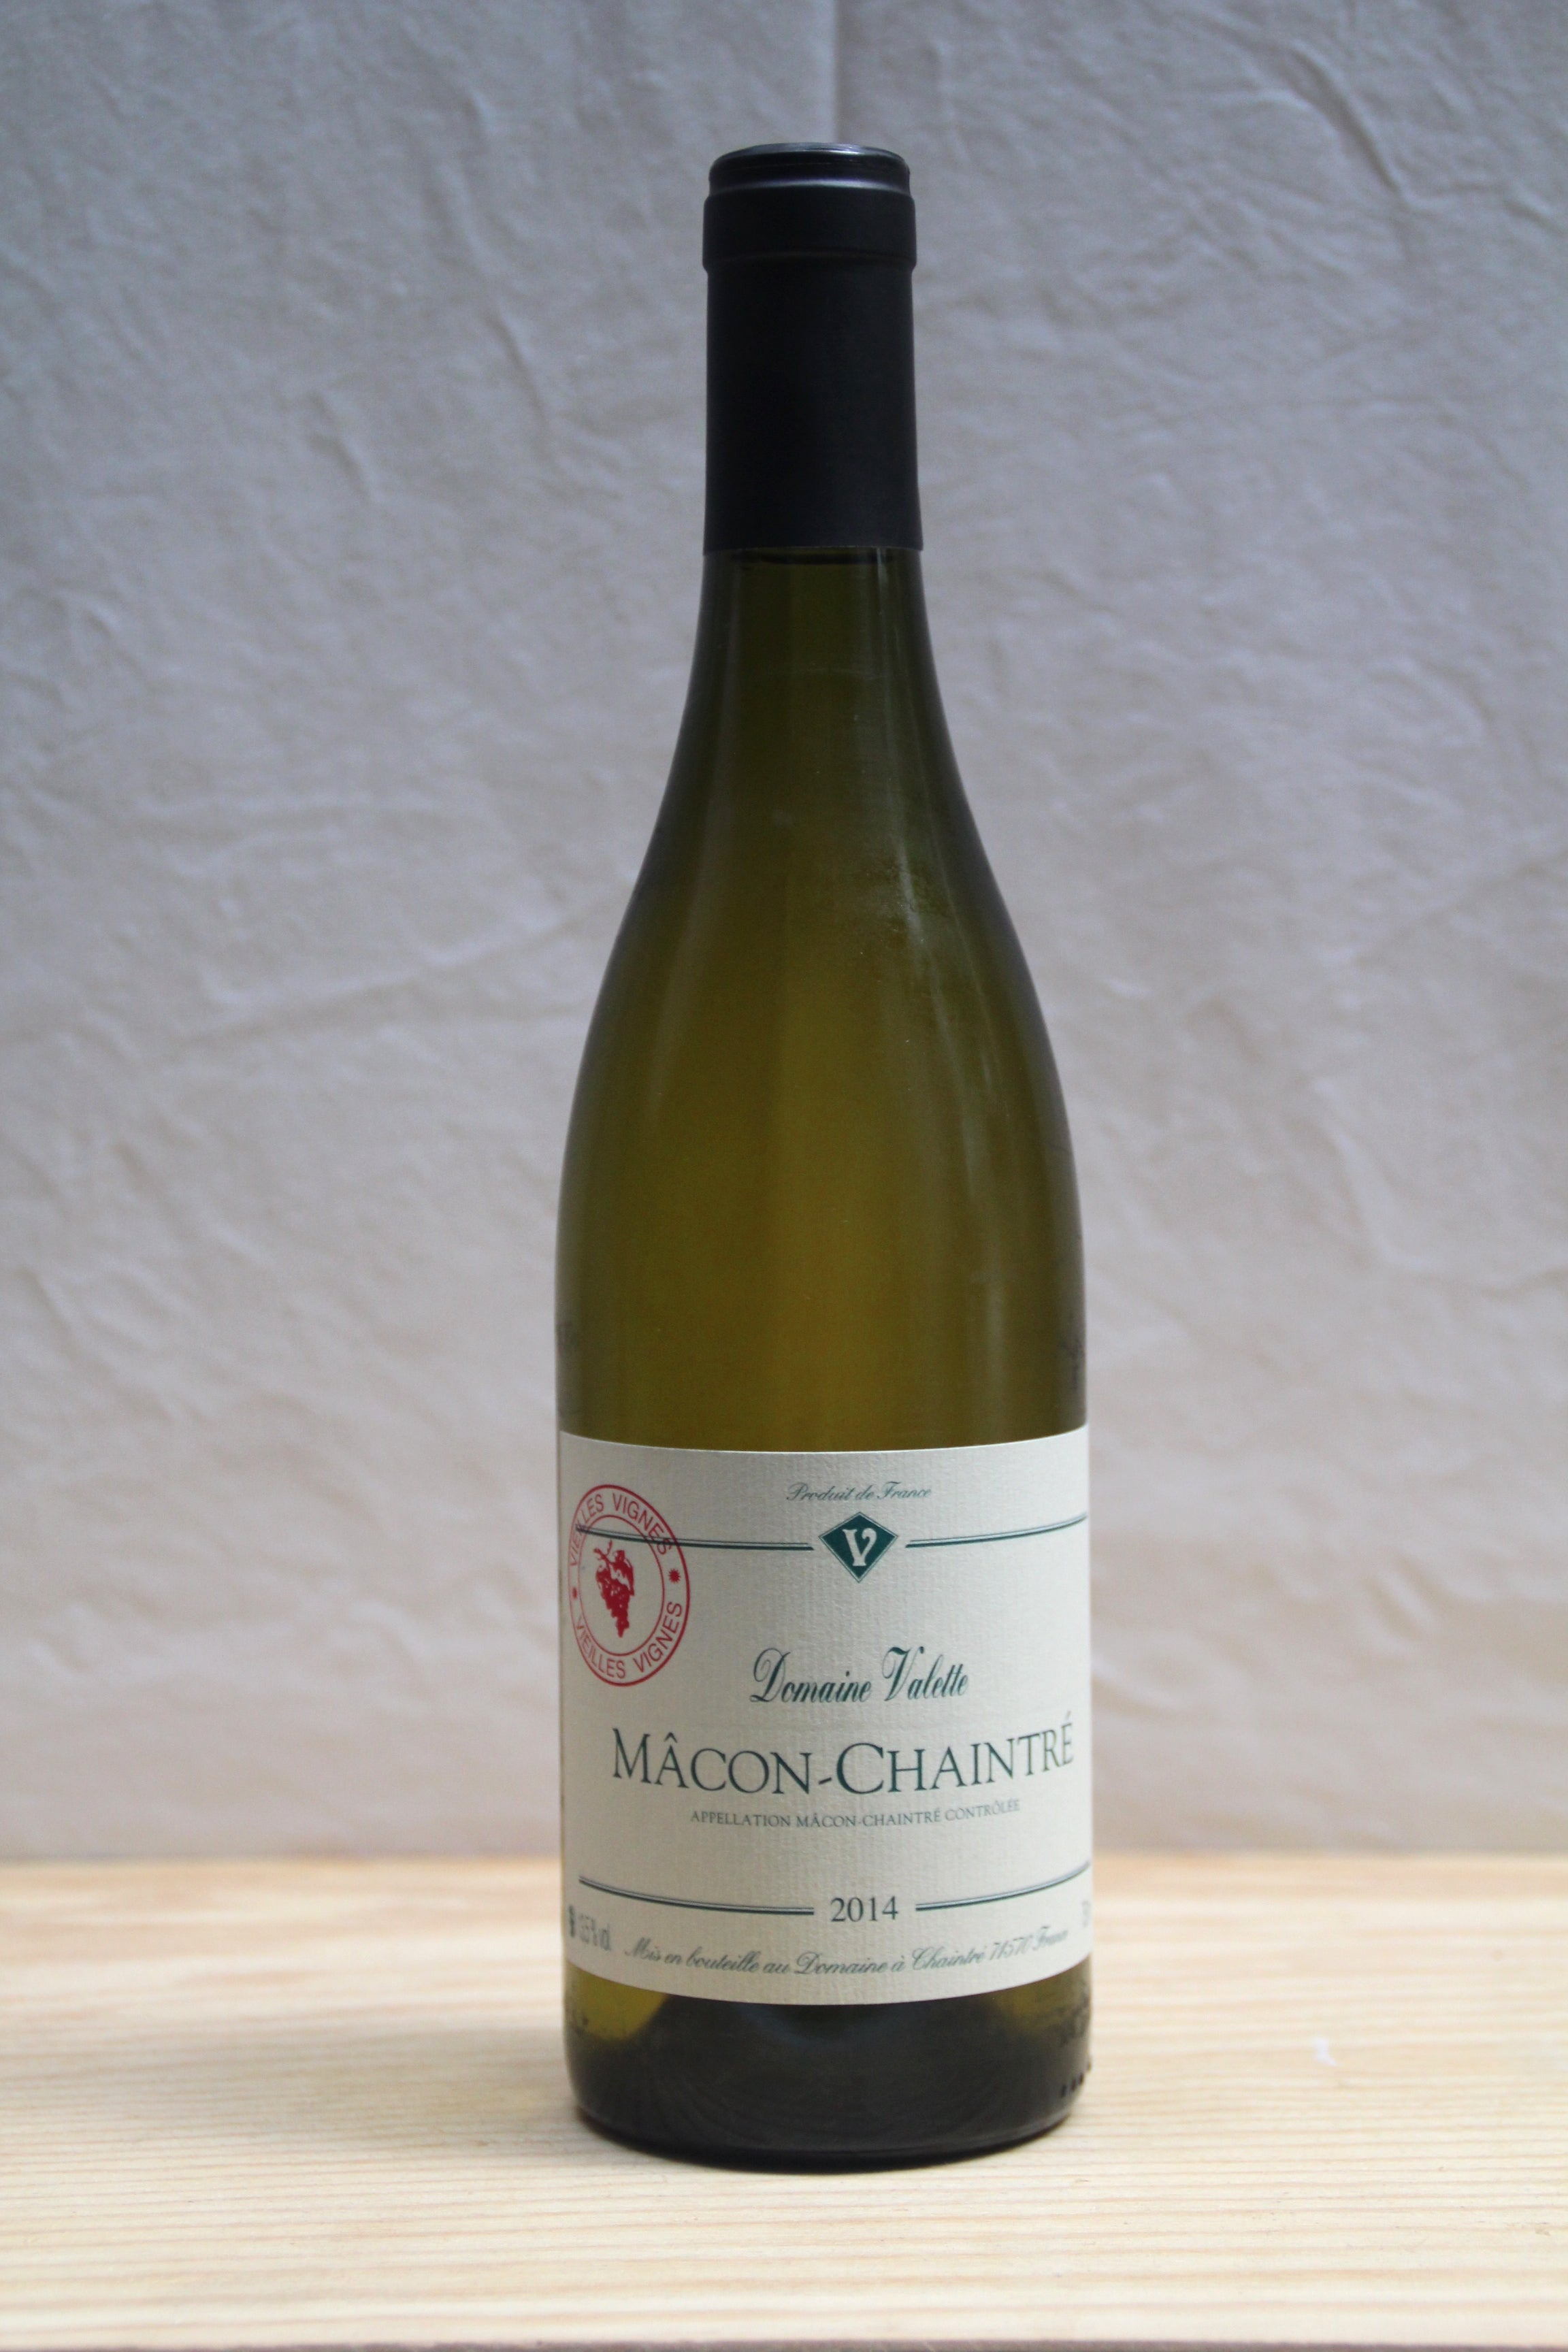 Macon Chaintre VV 2014 - Domaine Valette - SOLD OUT